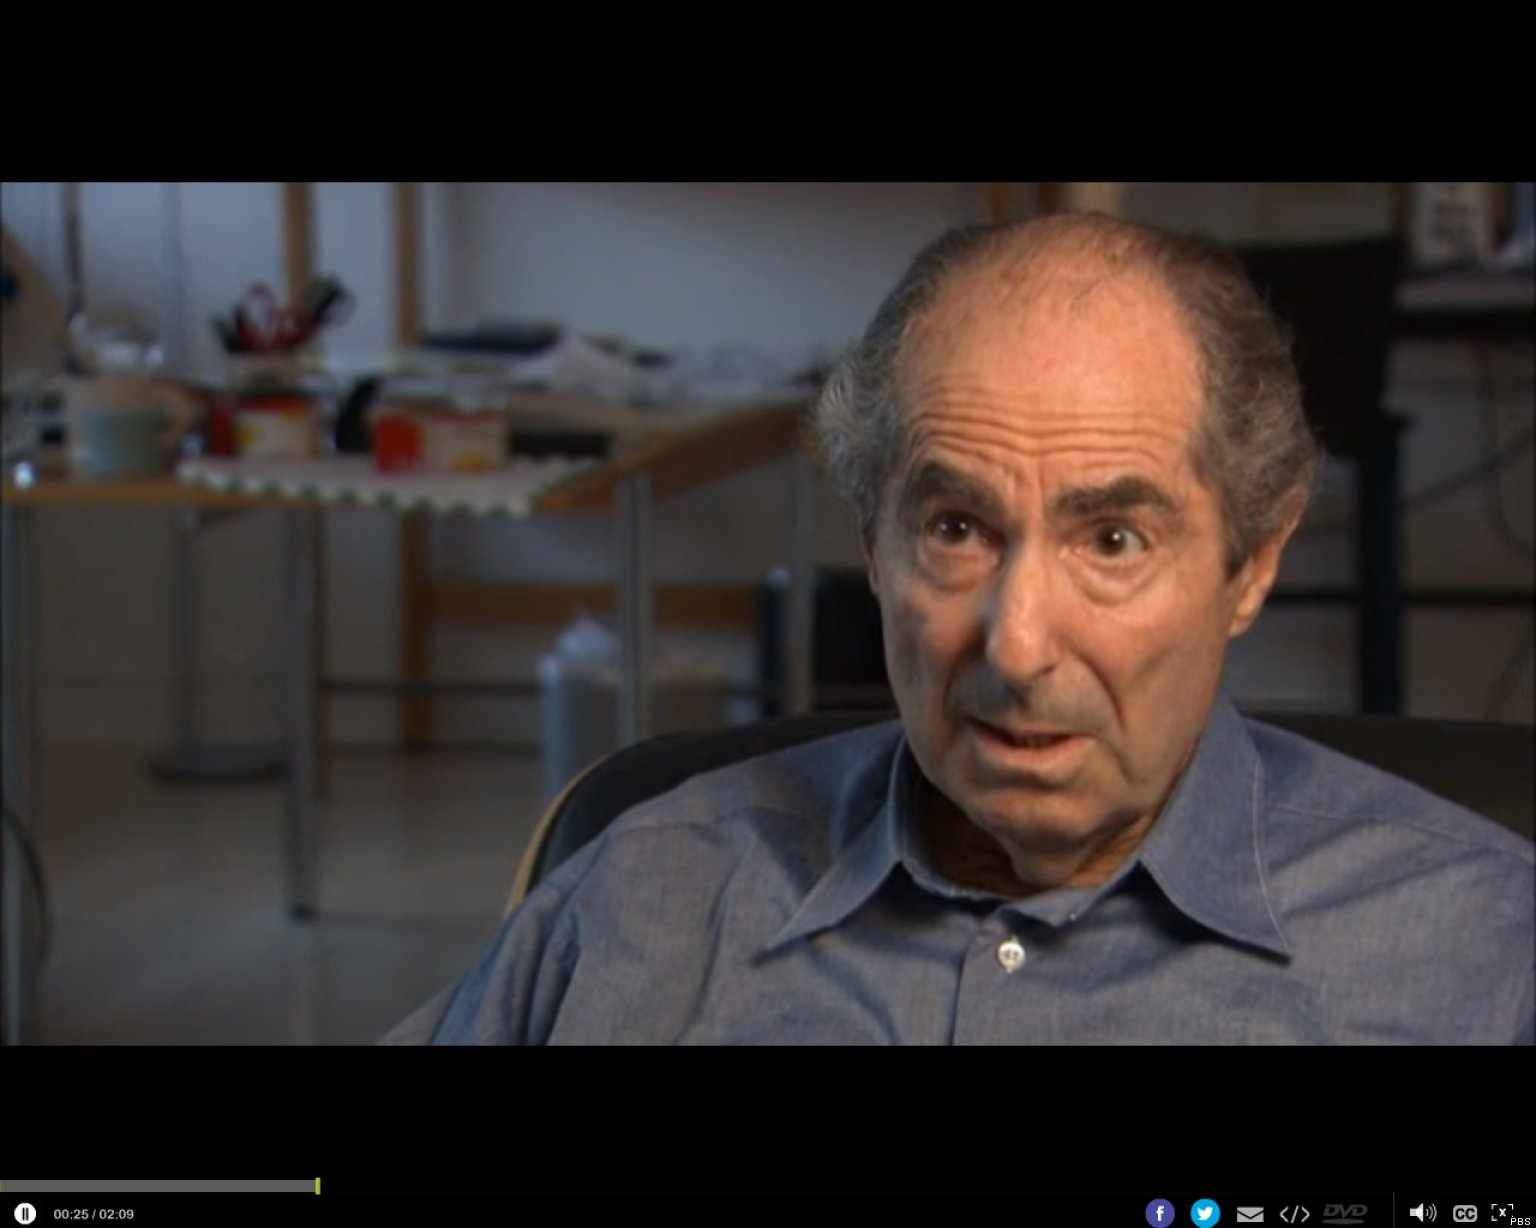 Philip Roth On Ebooks: Pbs Documentary Reveals Author's Thoughts On The  Future Of Reading  Huffpost